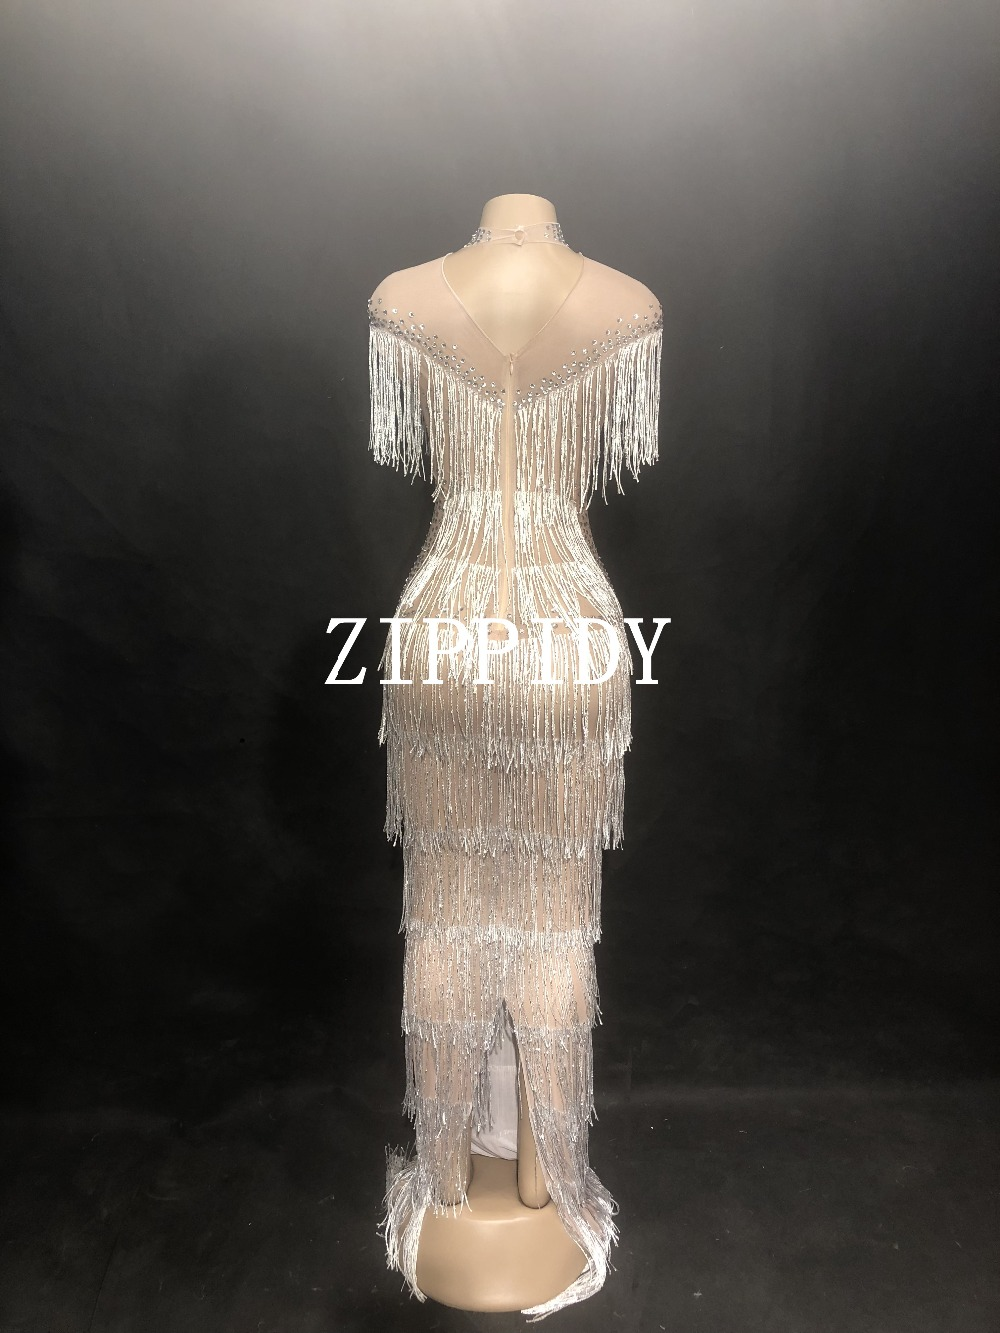 Luxurious Stones Mesh See Through Dress Women Fashion Birthday Dress Stage Female Singer Show Birthday Evening Party Dress in Dresses from Women 39 s Clothing